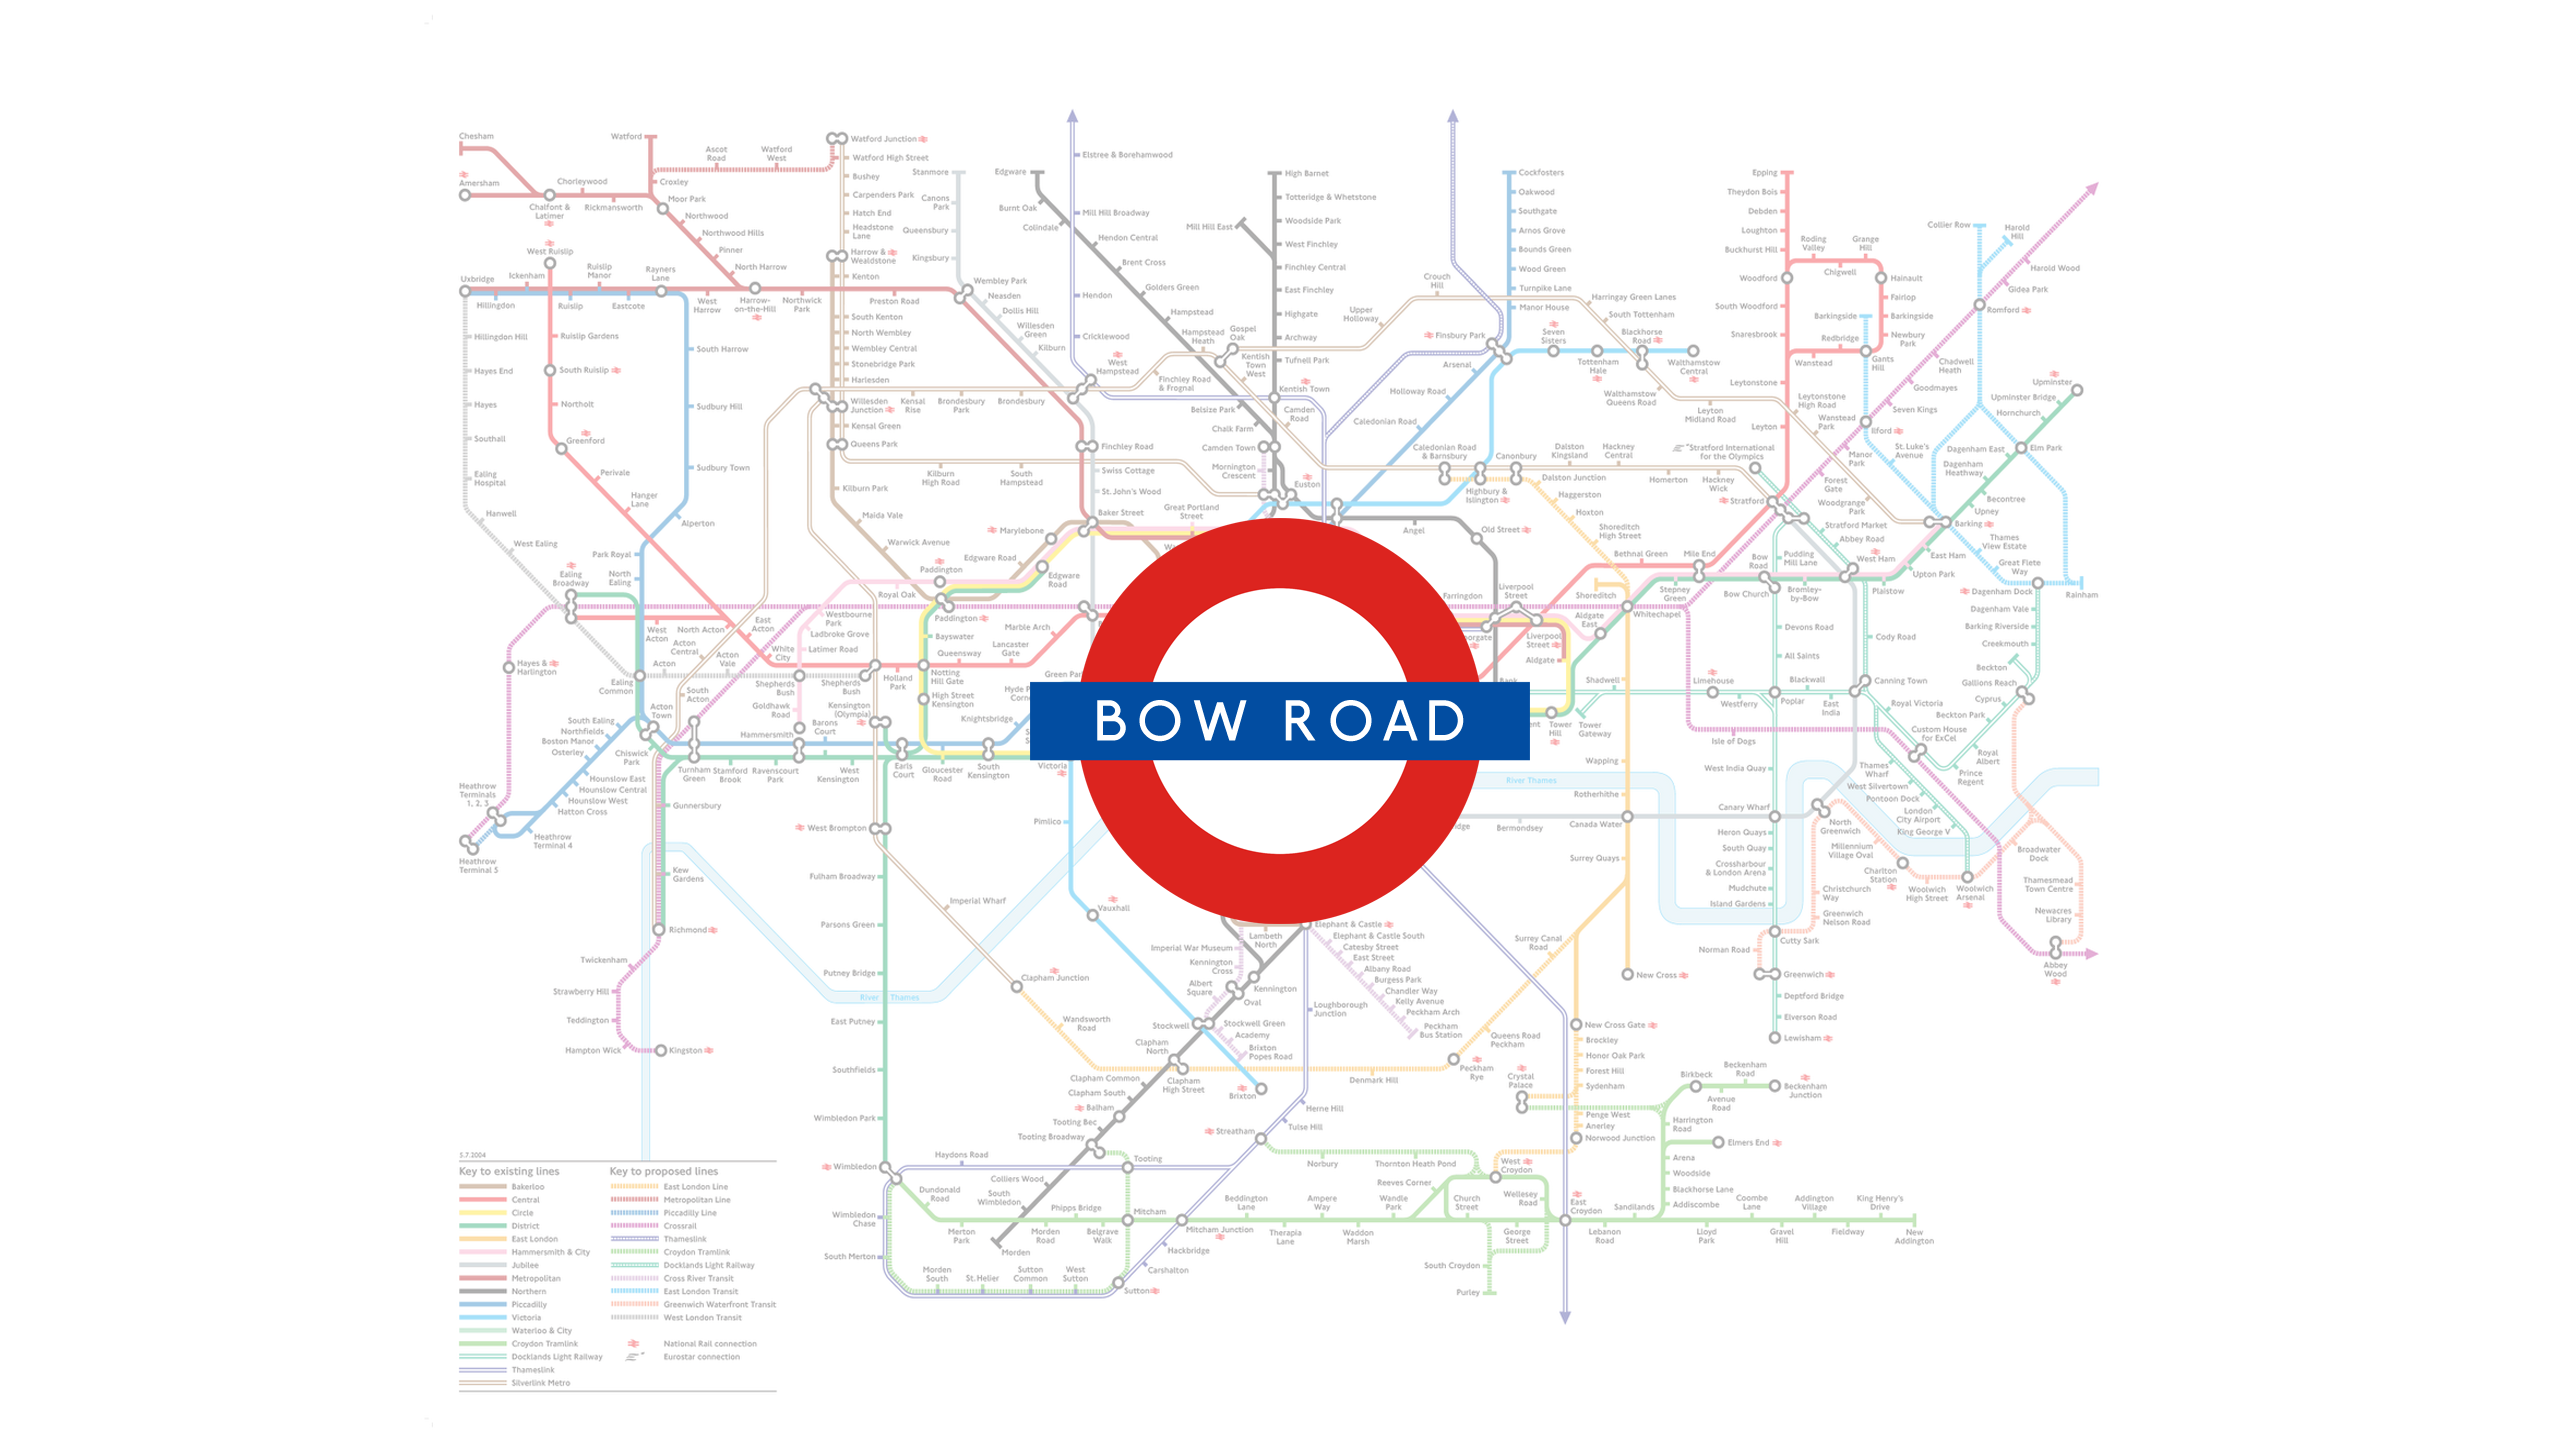 Bow Road (Map)